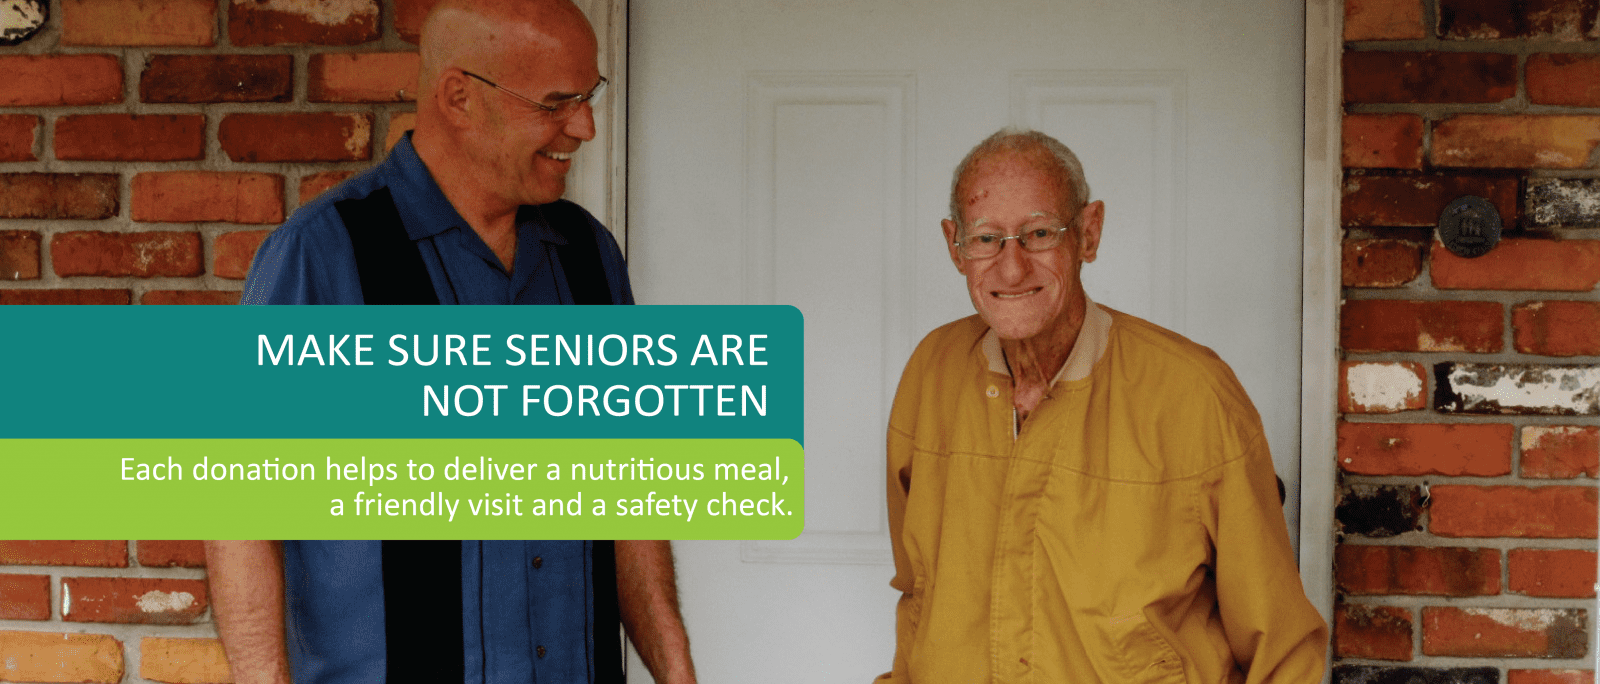 Make sure seniors are not forgotten_Ways to Give page-04